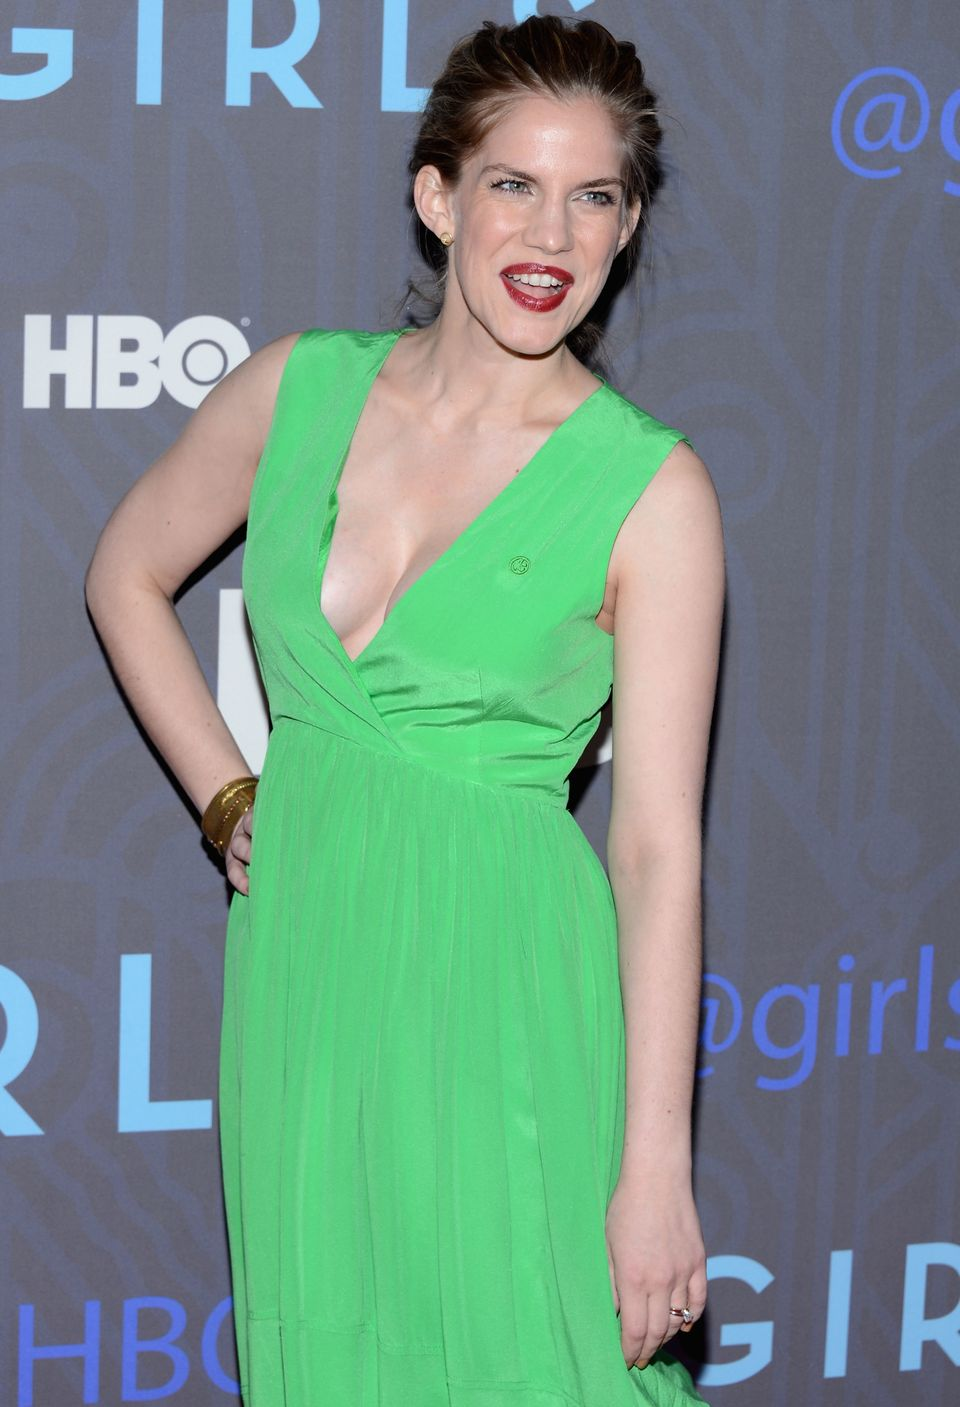 """""""My Girl"""" meets """"Girls!"""" Thanks to this dress's plunging neckline, actress Anna Chlumsky's 'girls' almost made an appearance"""